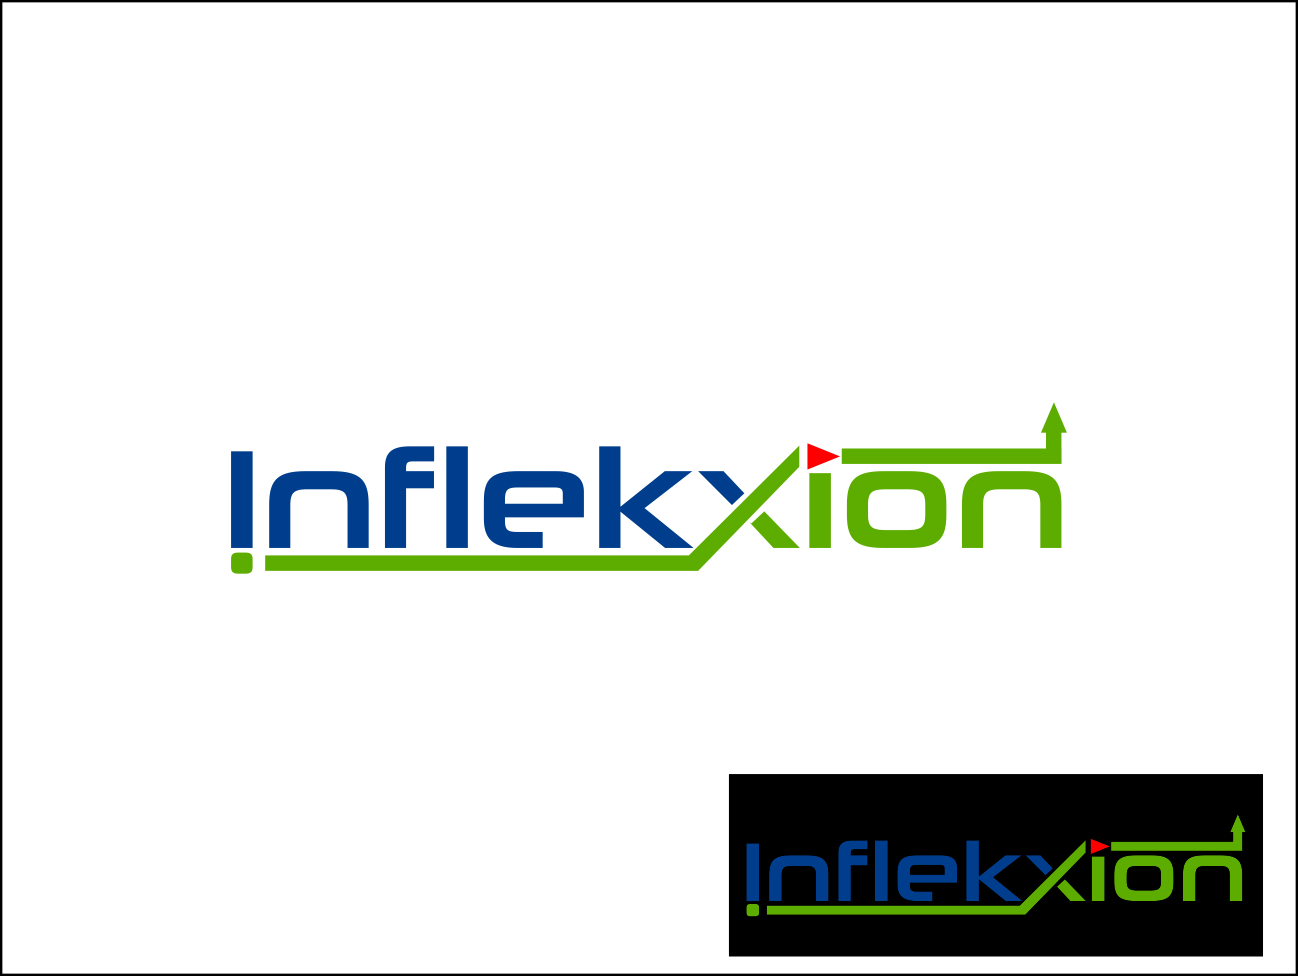 Logo Design by Agus Martoyo - Entry No. 53 in the Logo Design Contest Professional Logo Design for Inflekxion.